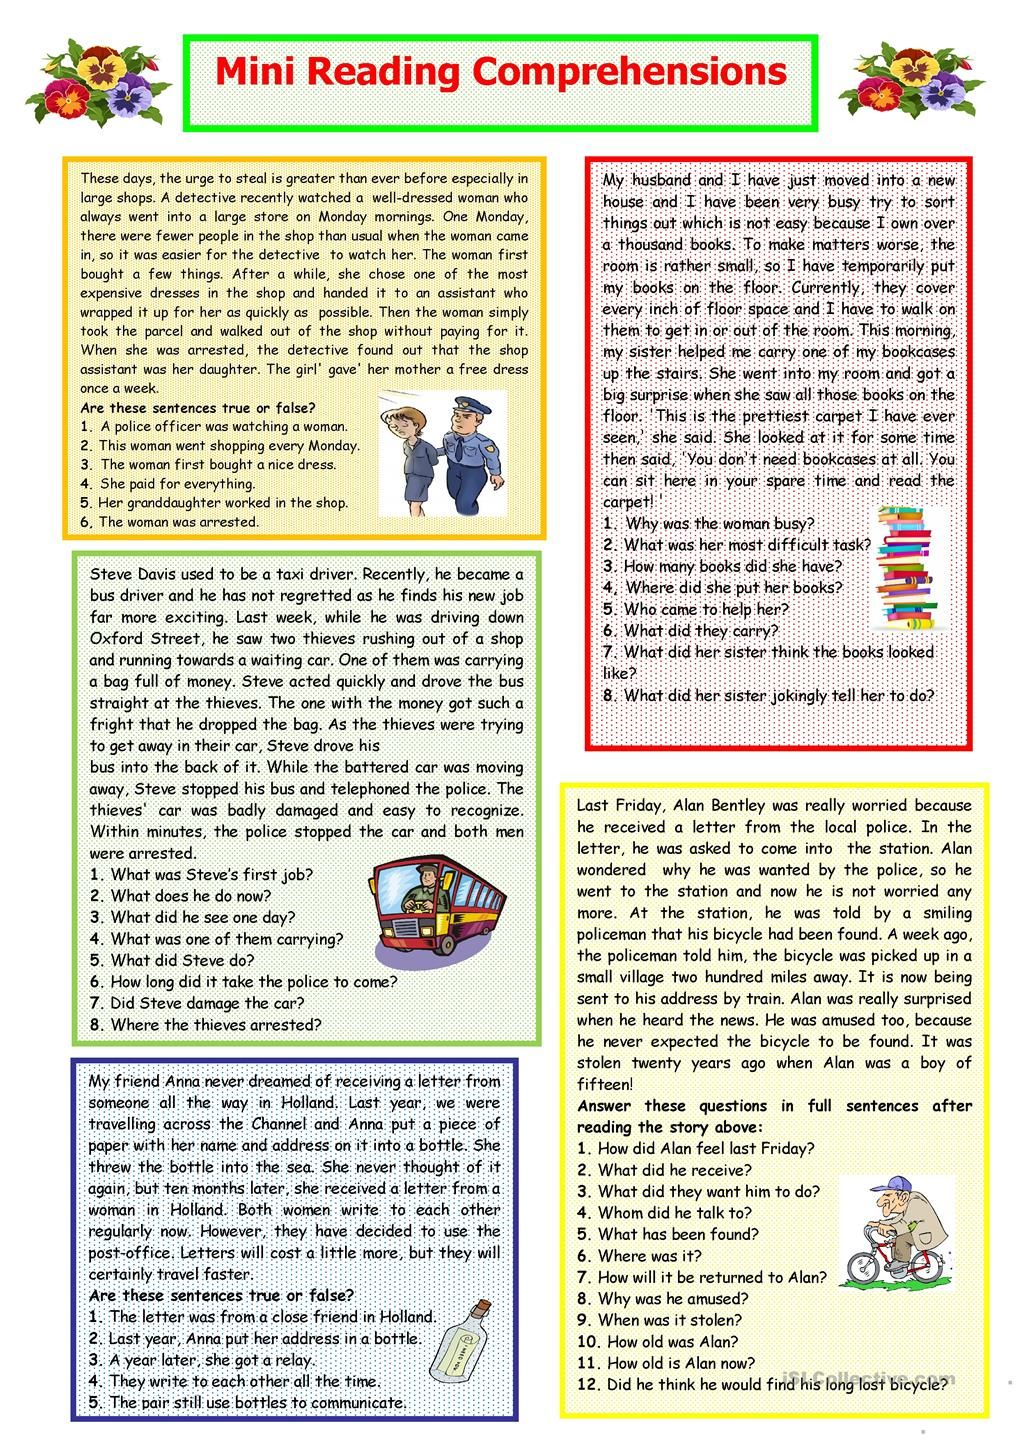 - Mini Reading Comprehensions Teaching Reading Comprehension